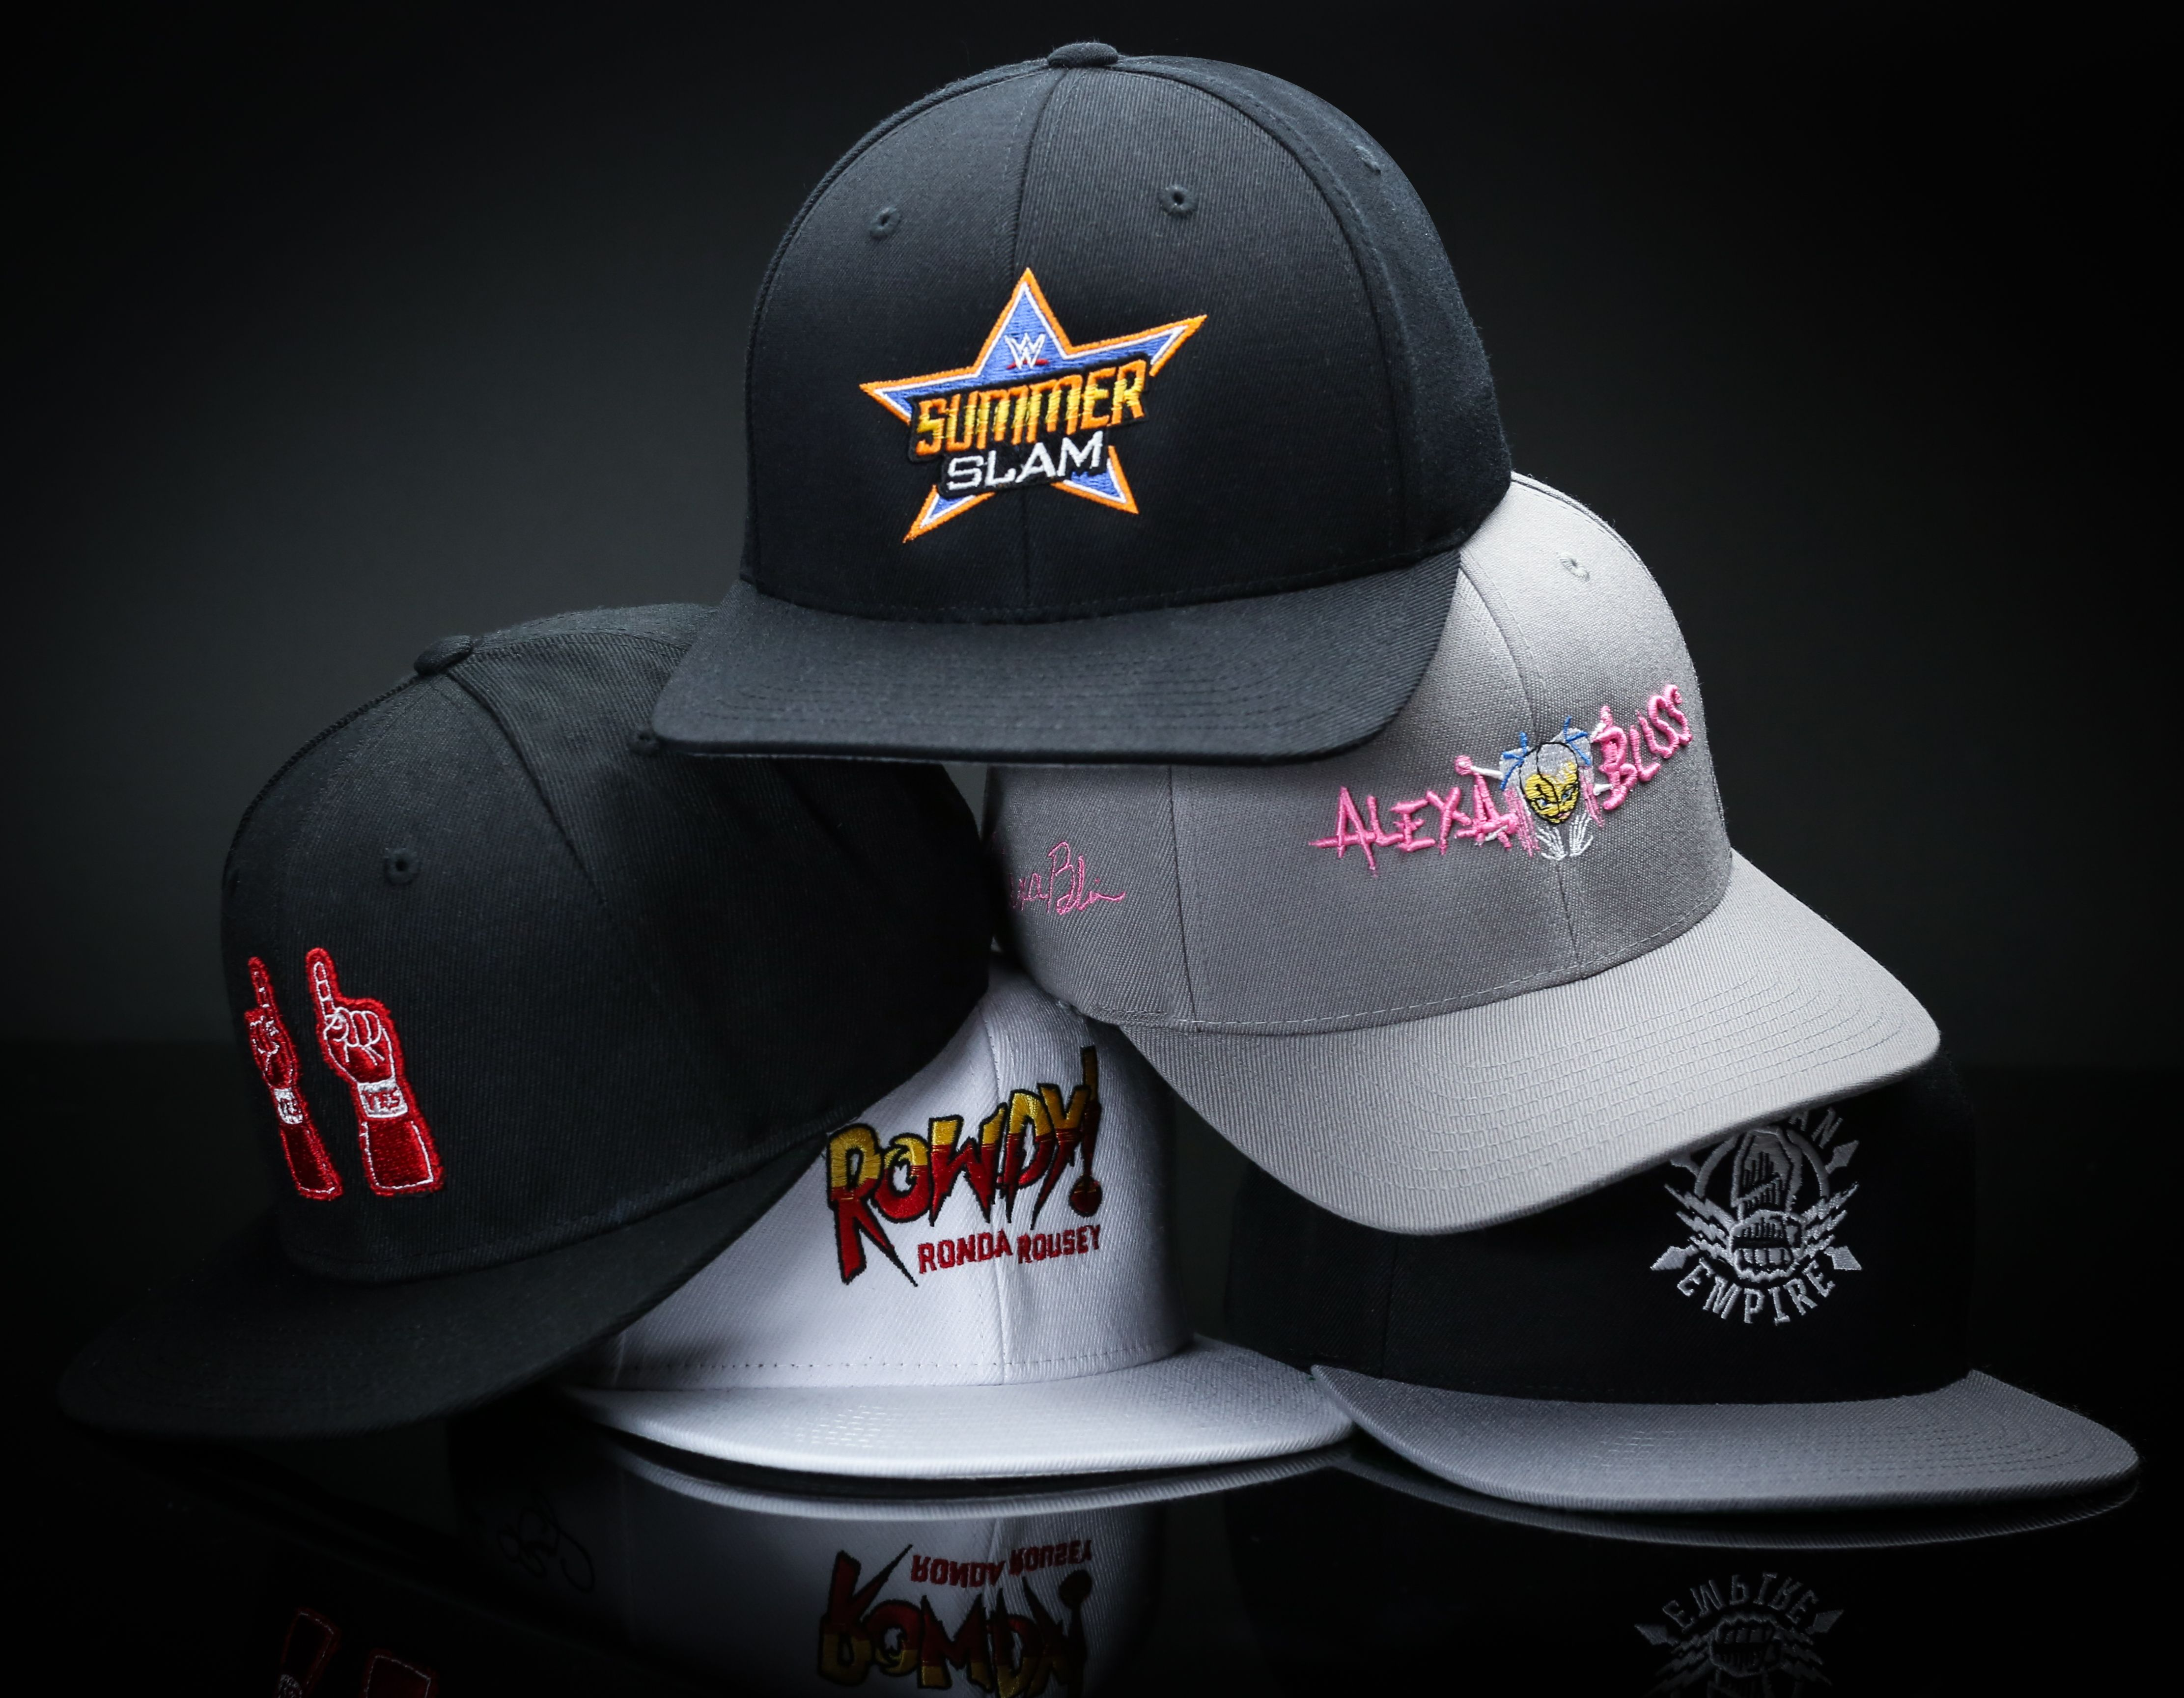 Personalize Your Love For Wwe With Custom Hats By Lids Custom Hats Hats Caps Hats